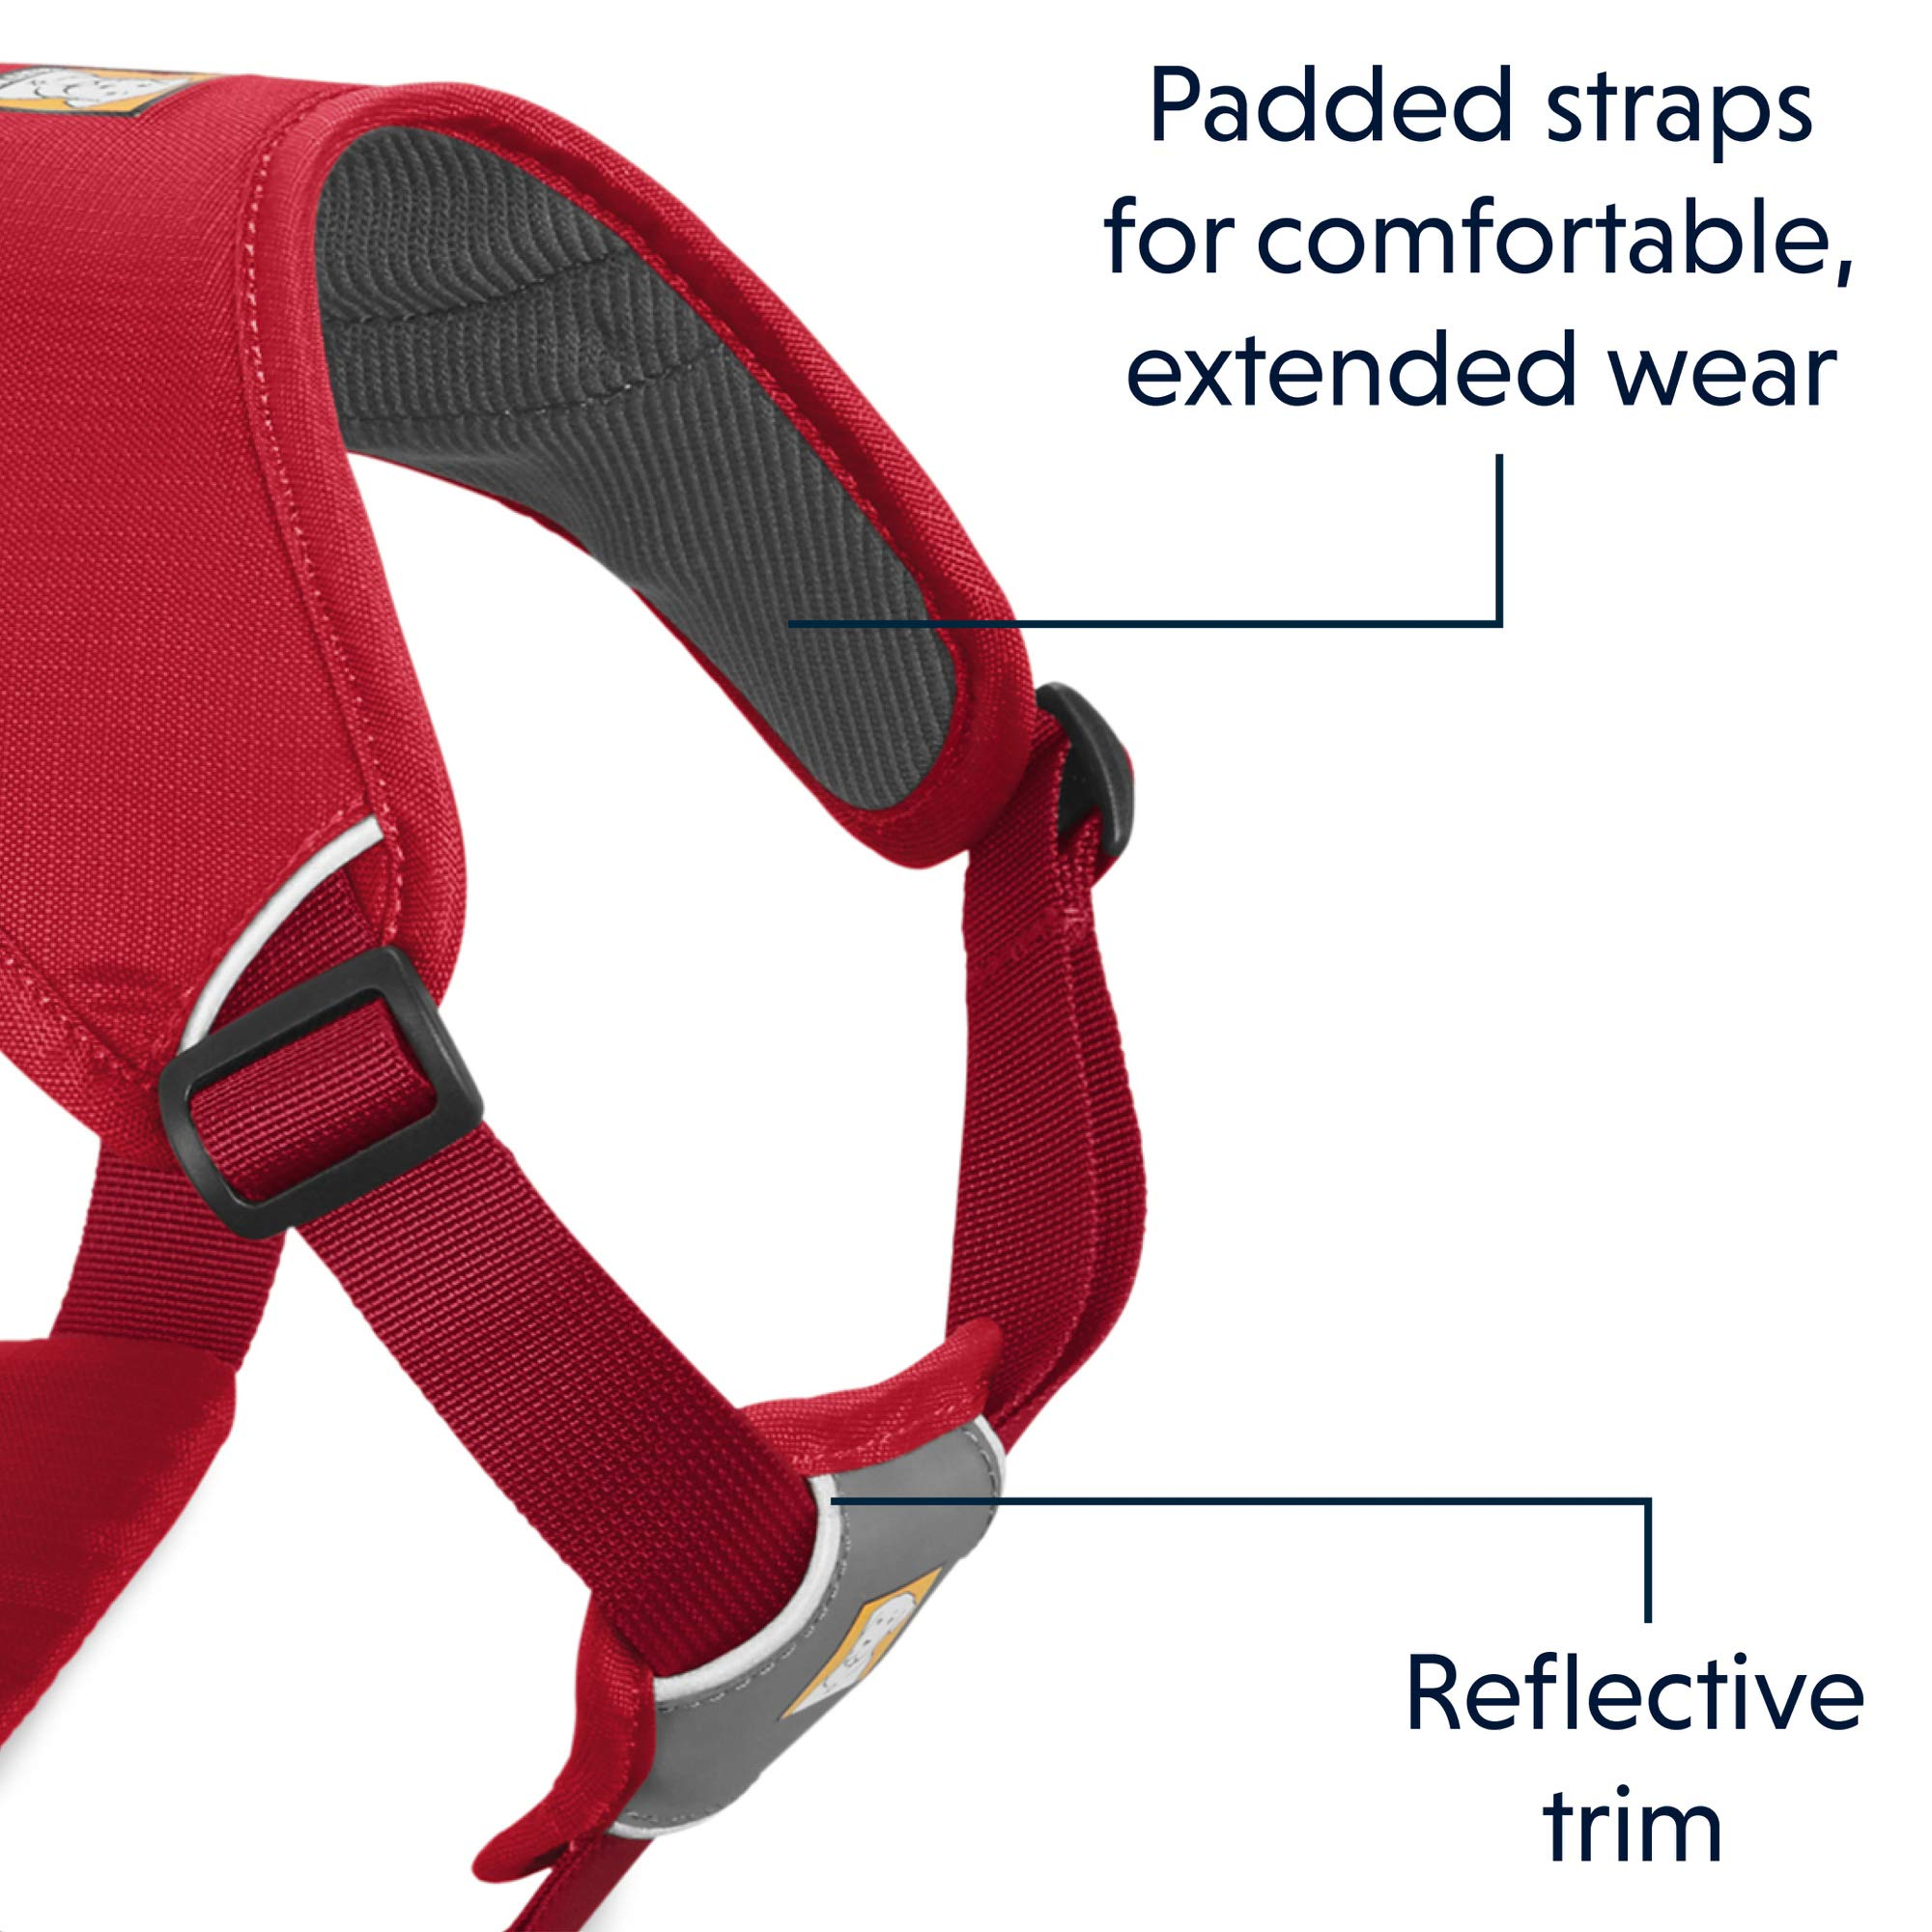 RUFFWEAR - Web Master, Multi-Use Support Dog Harness, Hiking and Trail Running, Service and Working, Everyday Wear, Red Currant, X-Small by RUFFWEAR (Image #6)